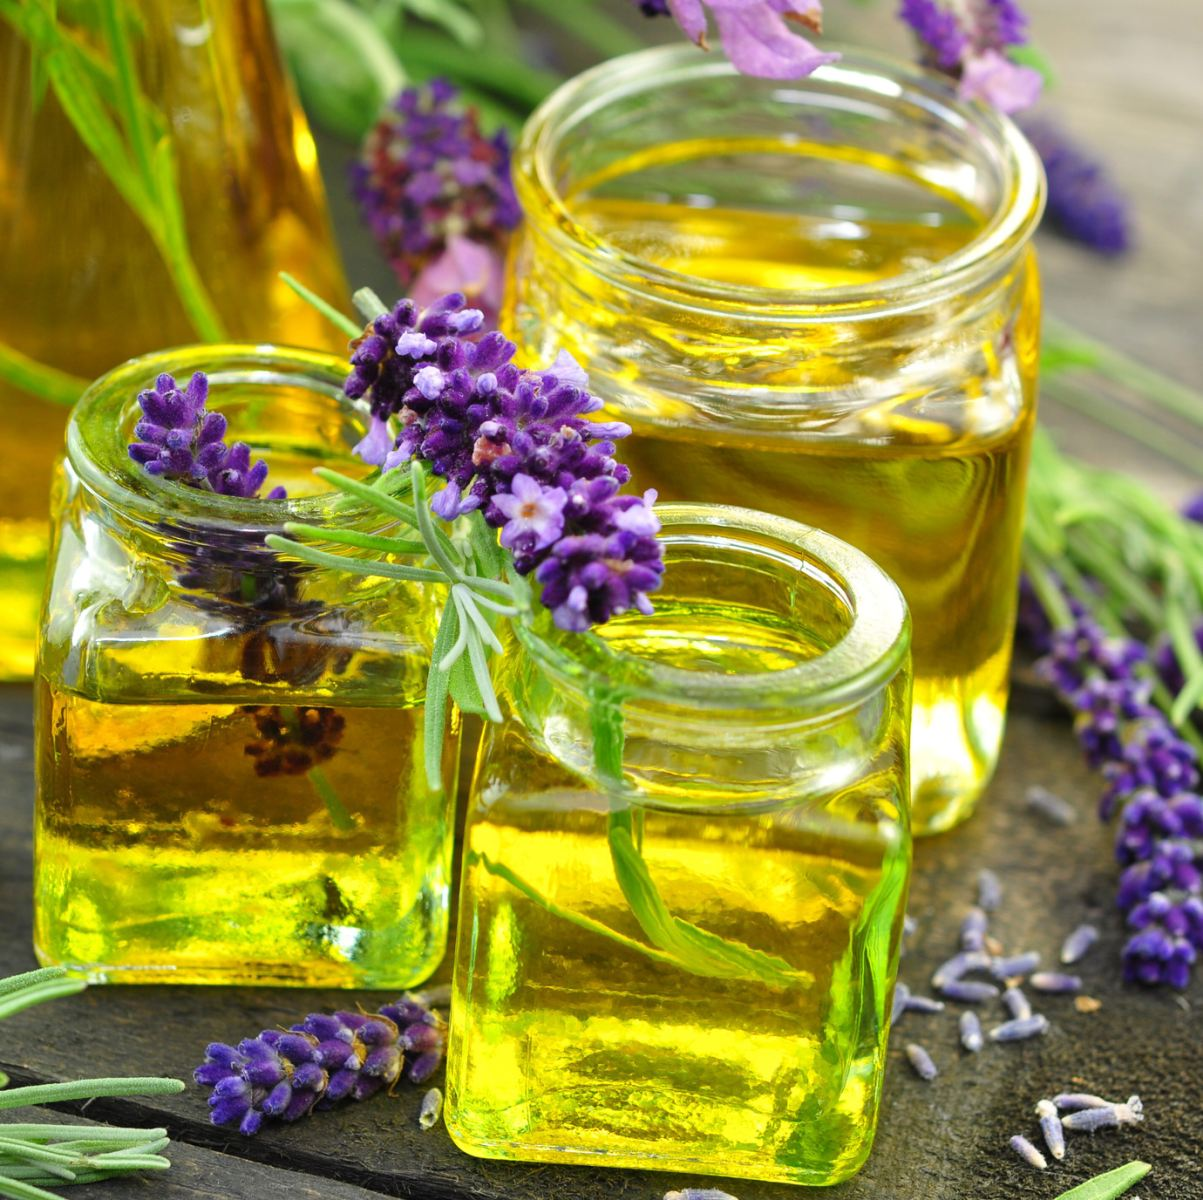 jars of oils with flowers